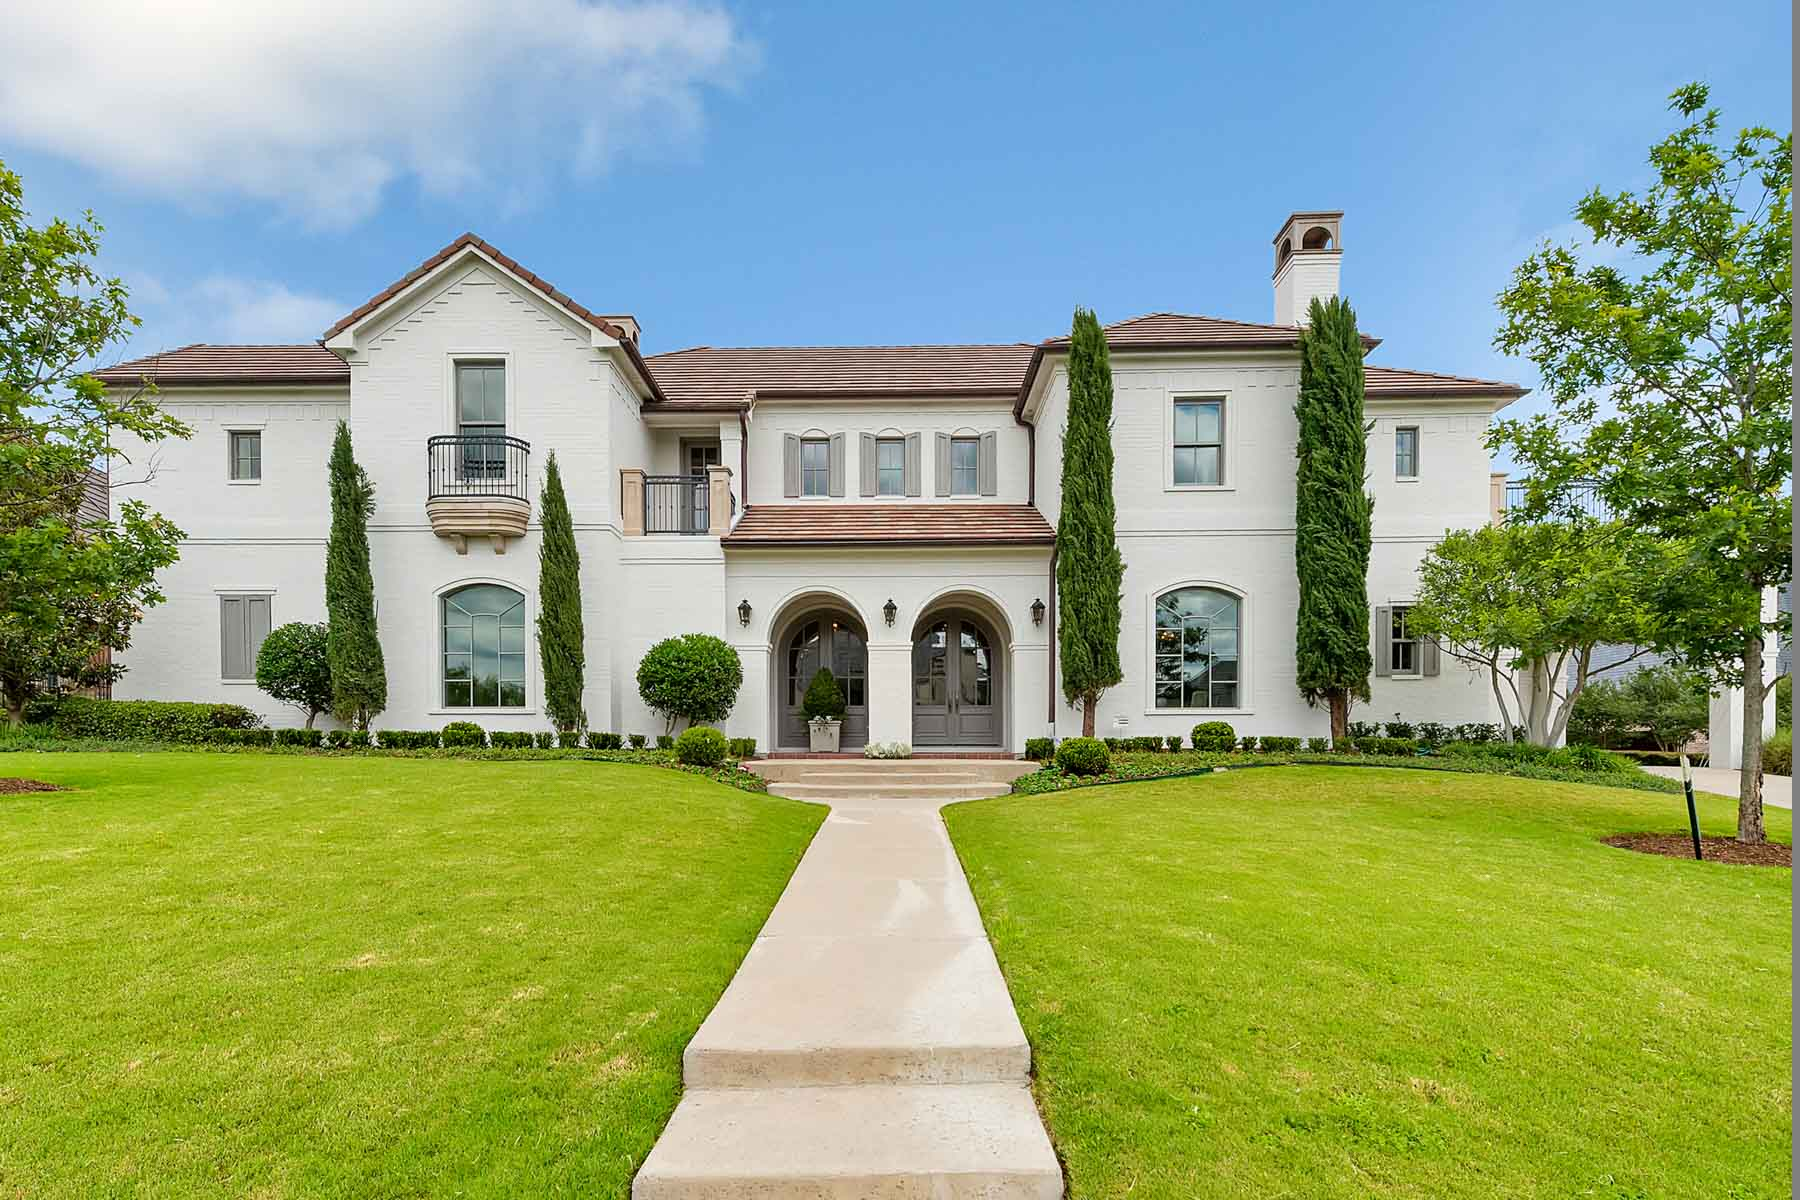 Single Family Home for Sale at Montserrat, Mediterranean 4609 Palencia Drive Fort Worth, Texas, 76126 United States